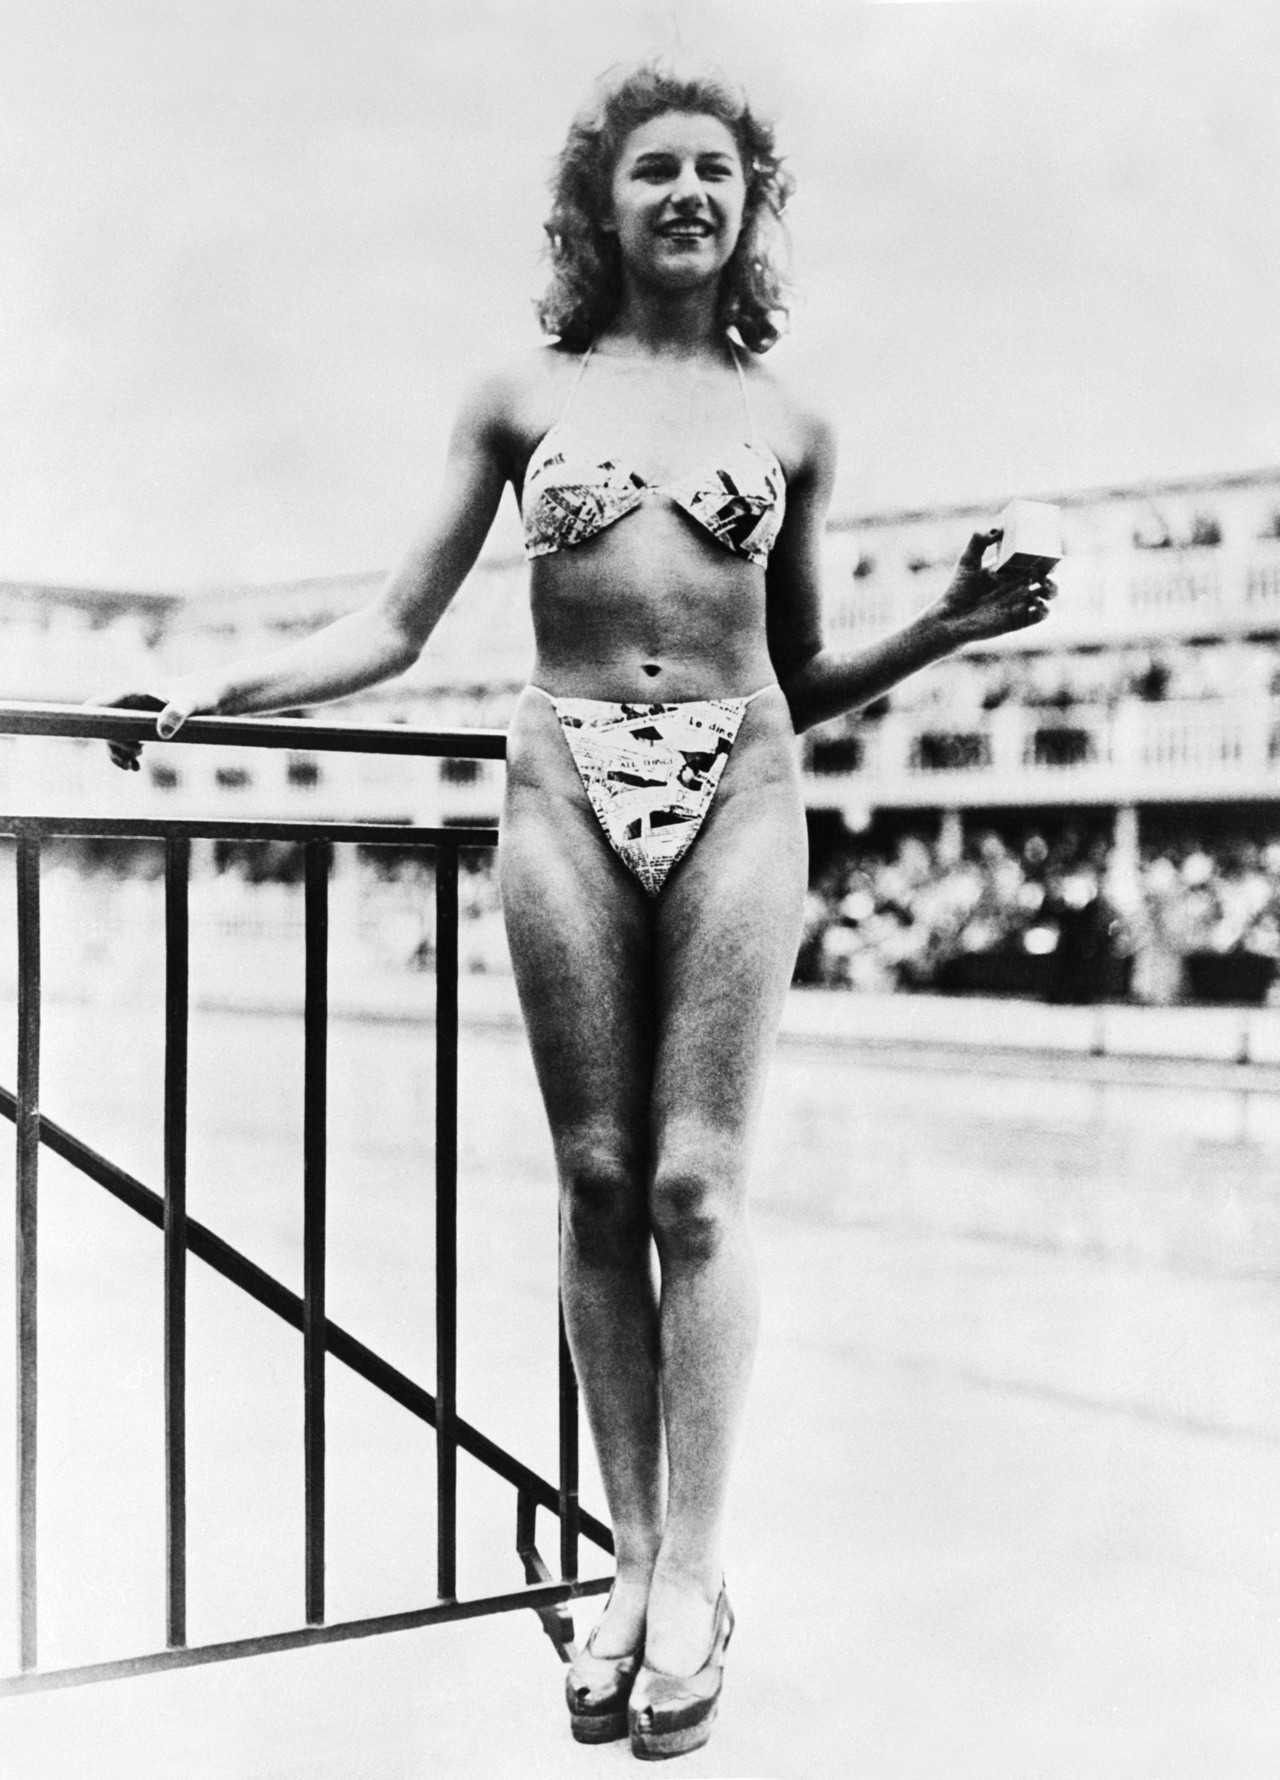 On July 5, 1946, French model Micheline Bernardini wore the bikini for the first time in Paris.